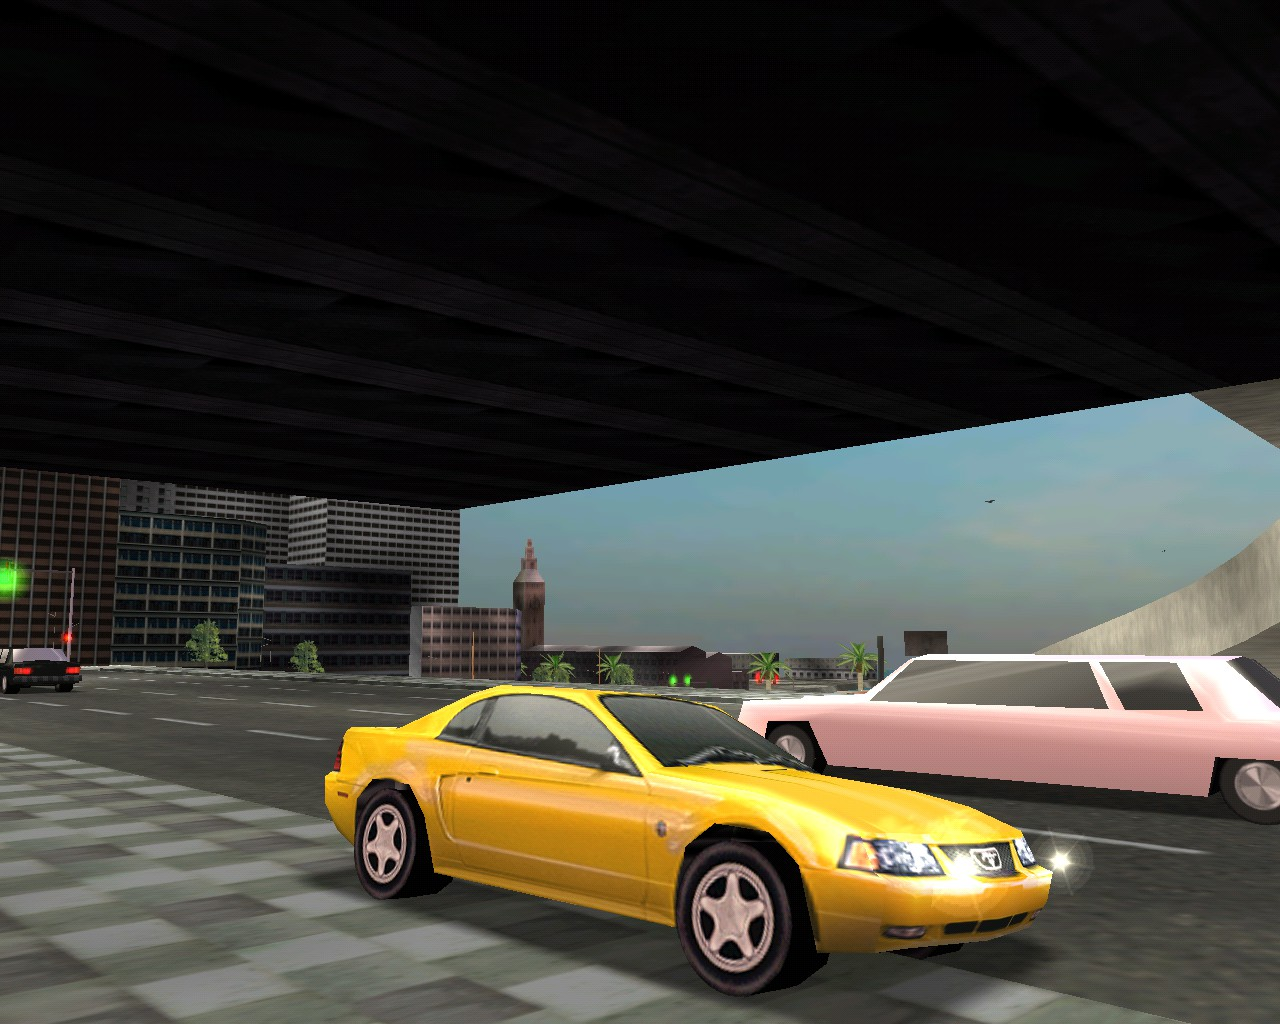 Ford Mustang GT   Midtown Madness 2 Wiki   FANDOM powered by Wikia